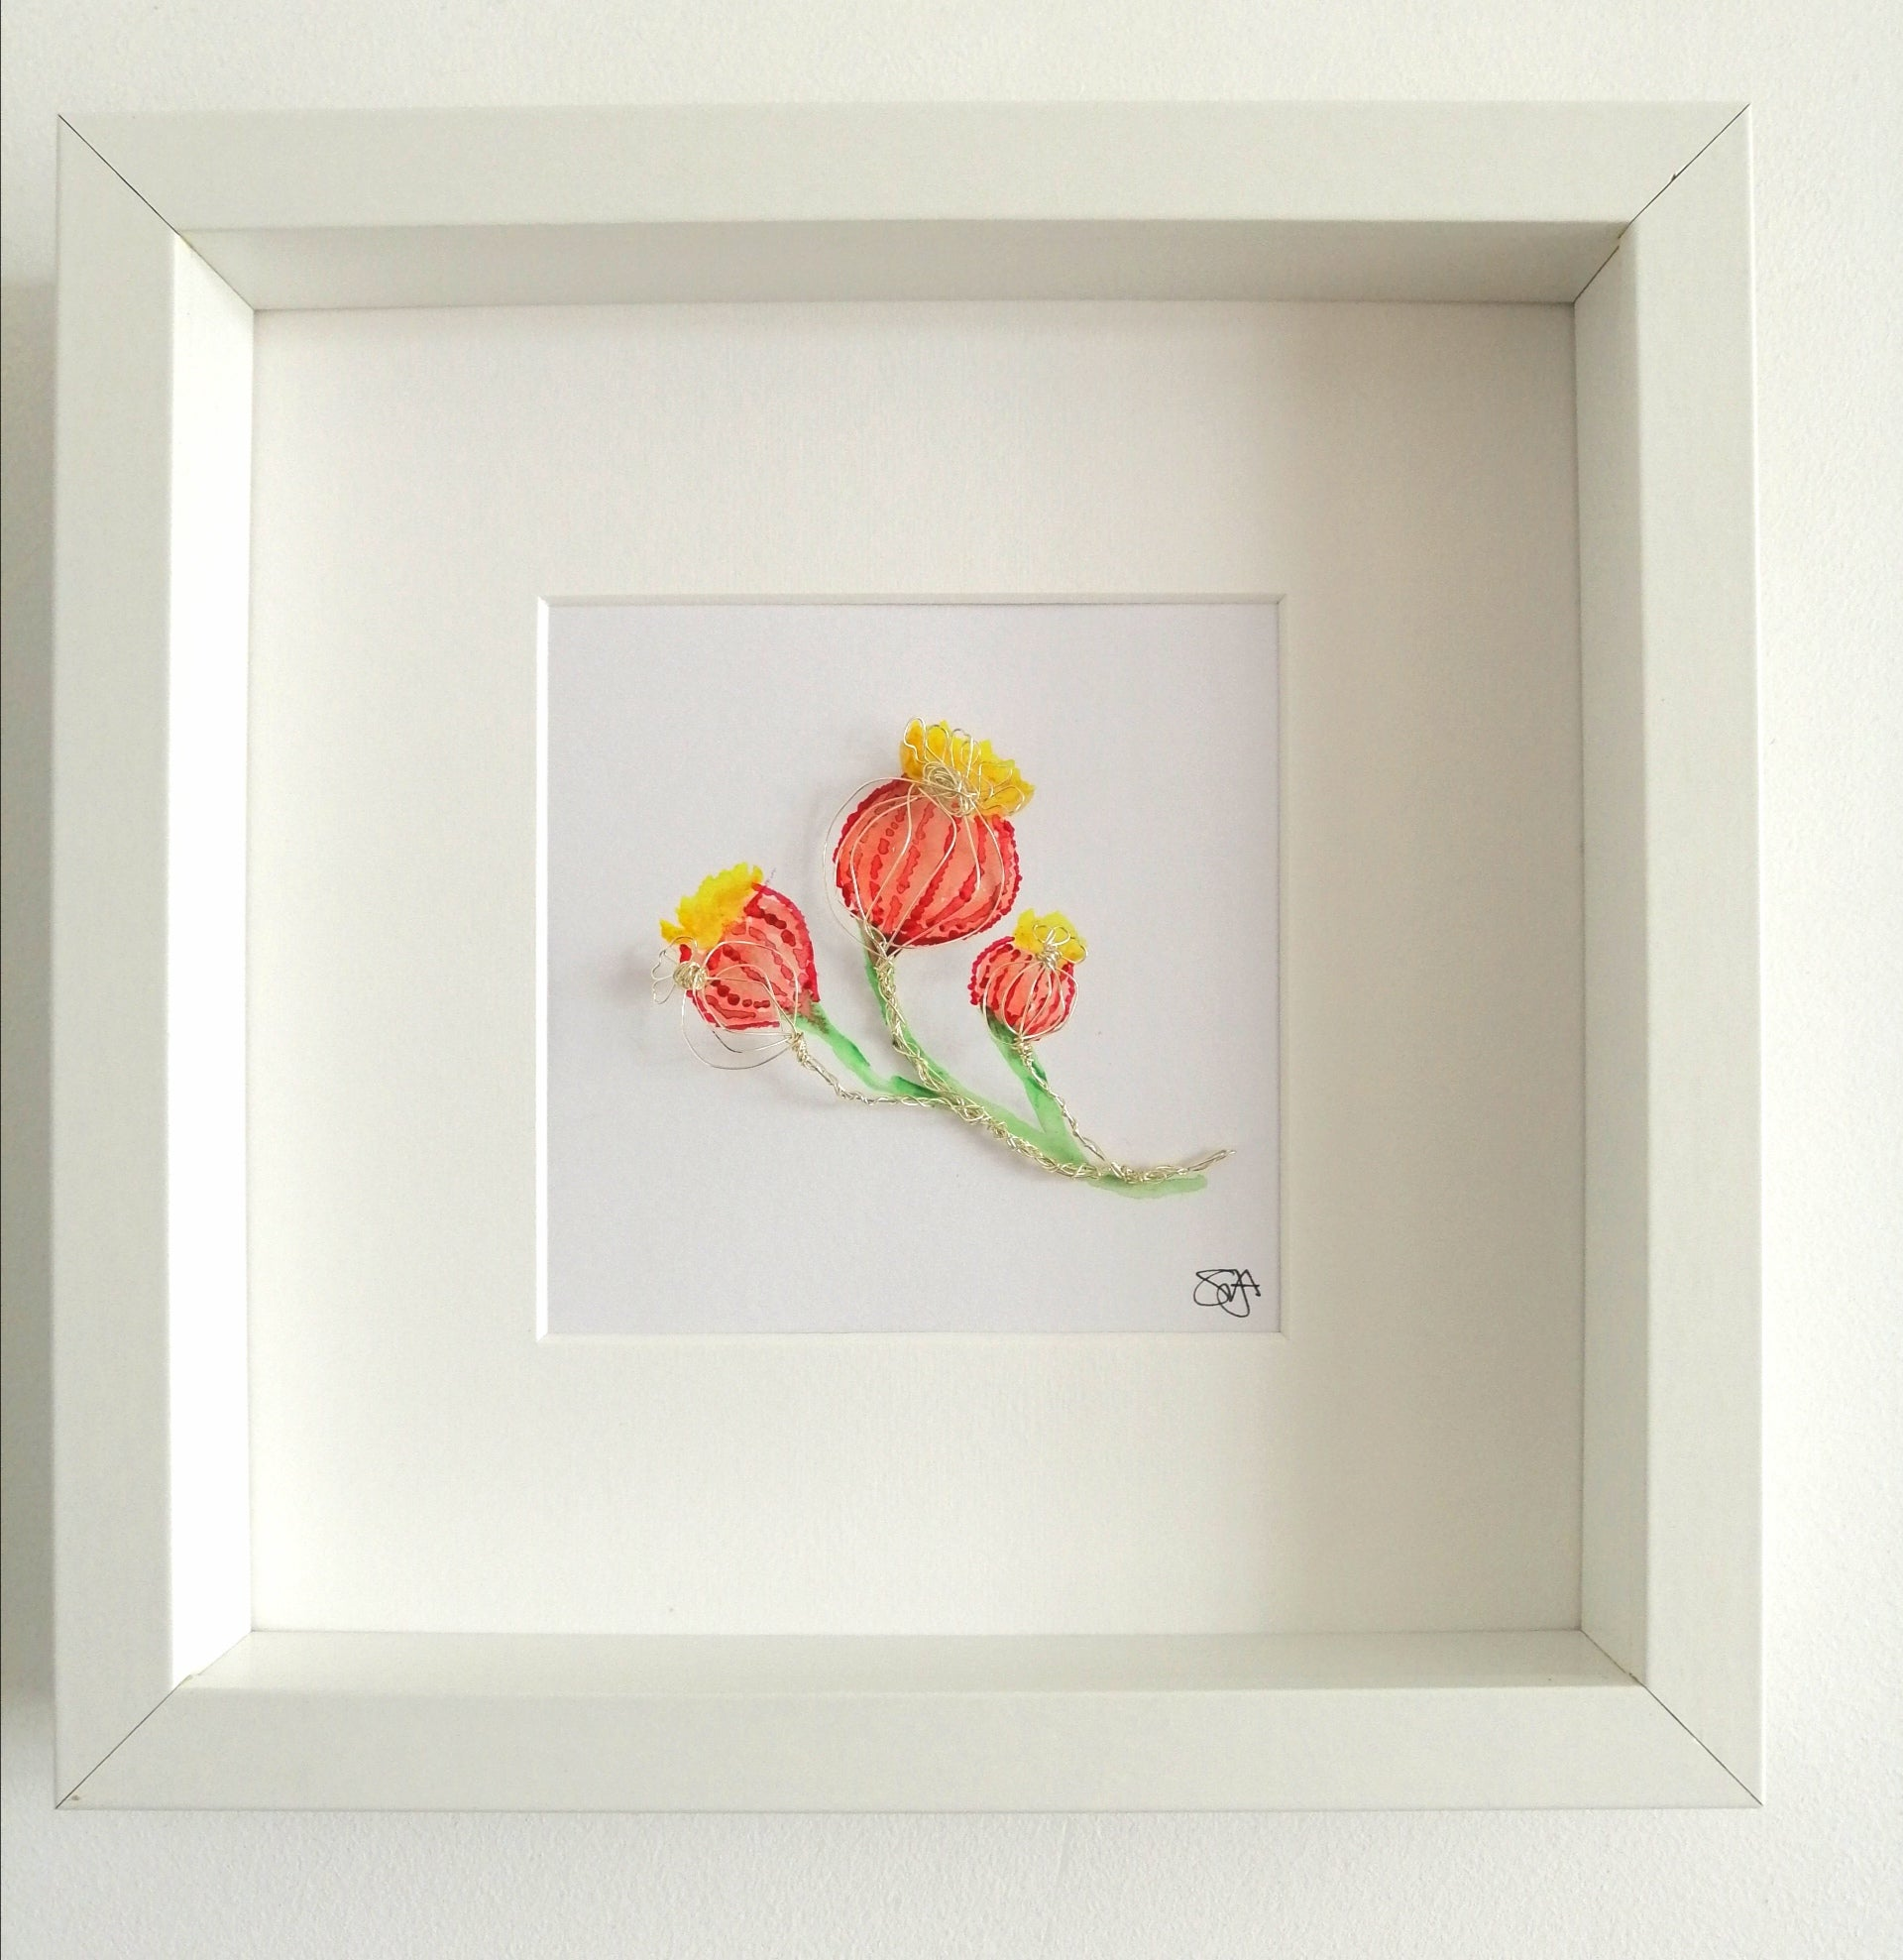 Poppy Seeds original Painting and wire sculpture framed art - Glitter and Gem Jewellery